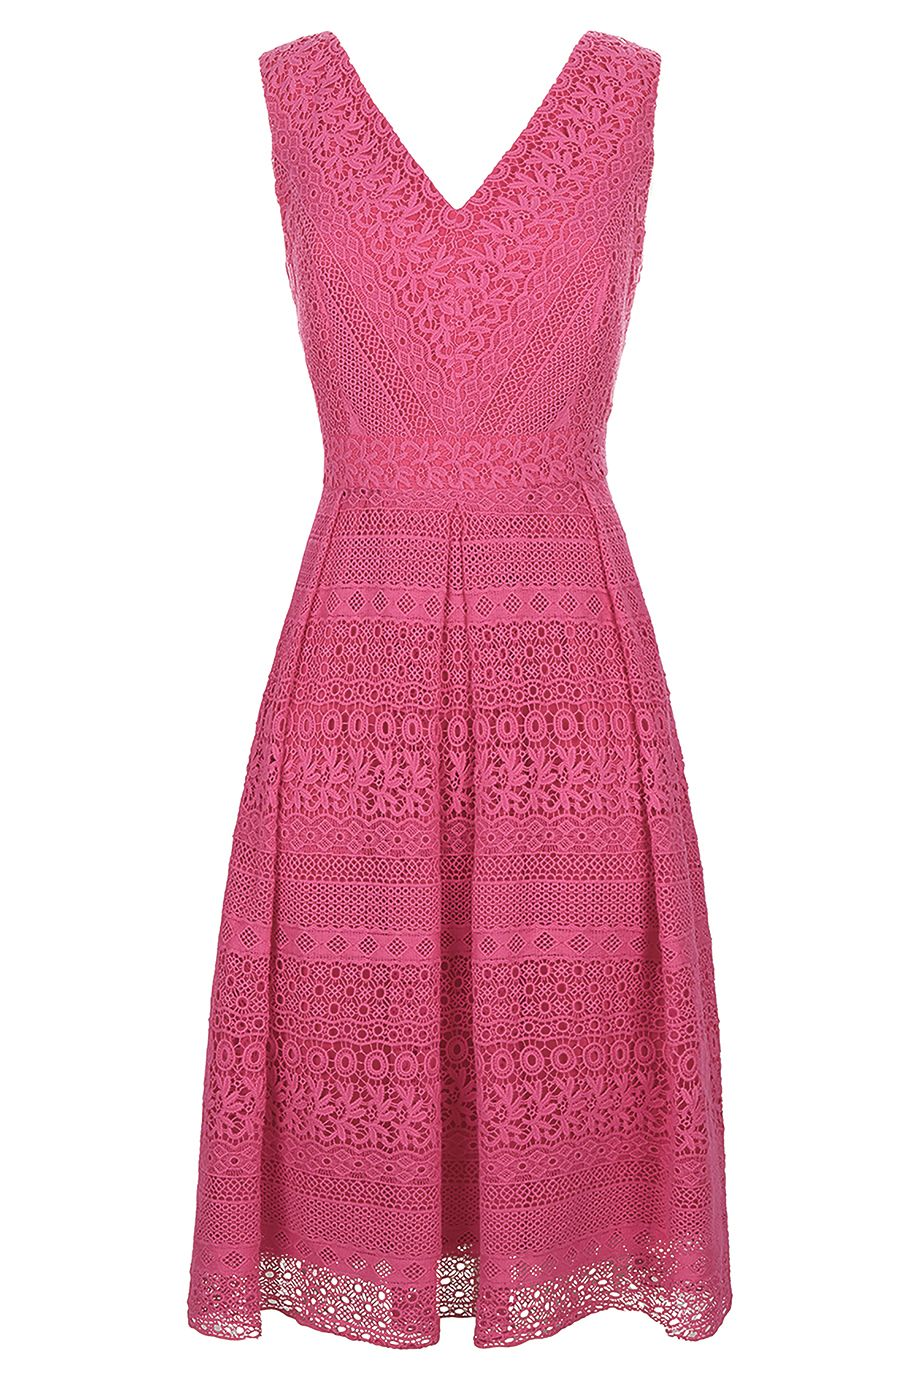 Fenn Wright Manson Sanzio Dress, Pink